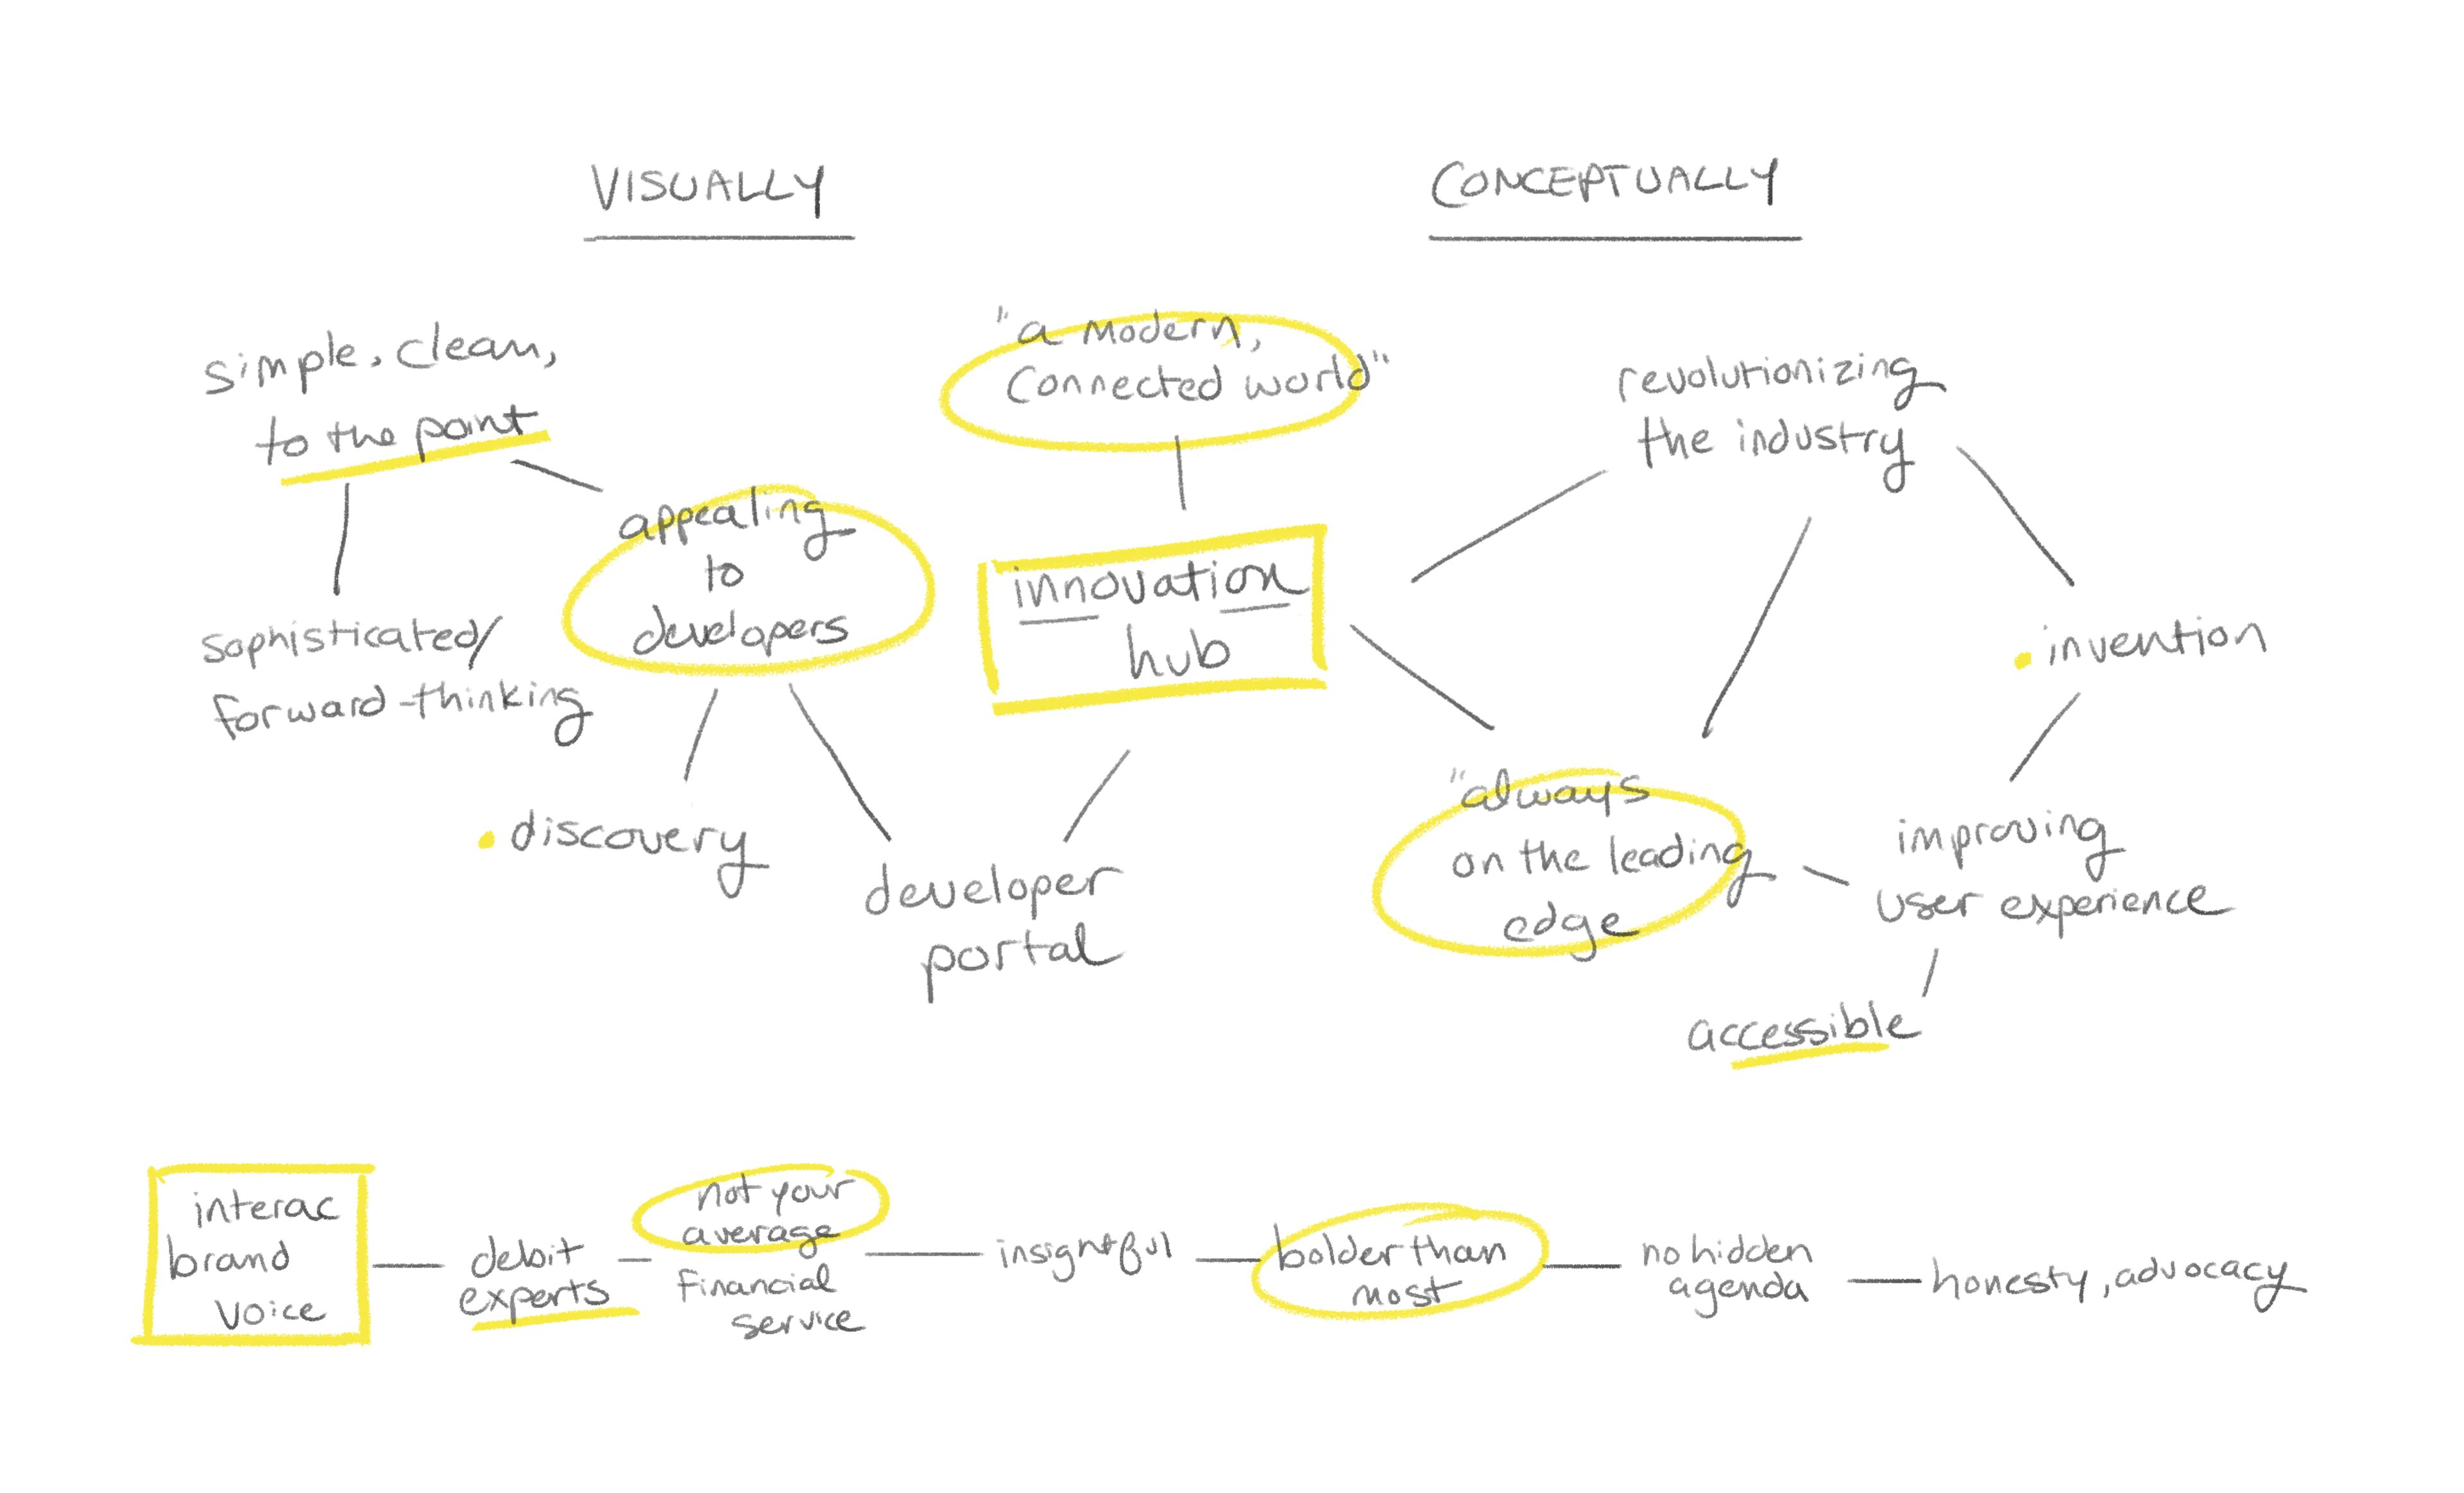 a rough handwritten mapping of process and how to best connect the resources with the developer community it serves